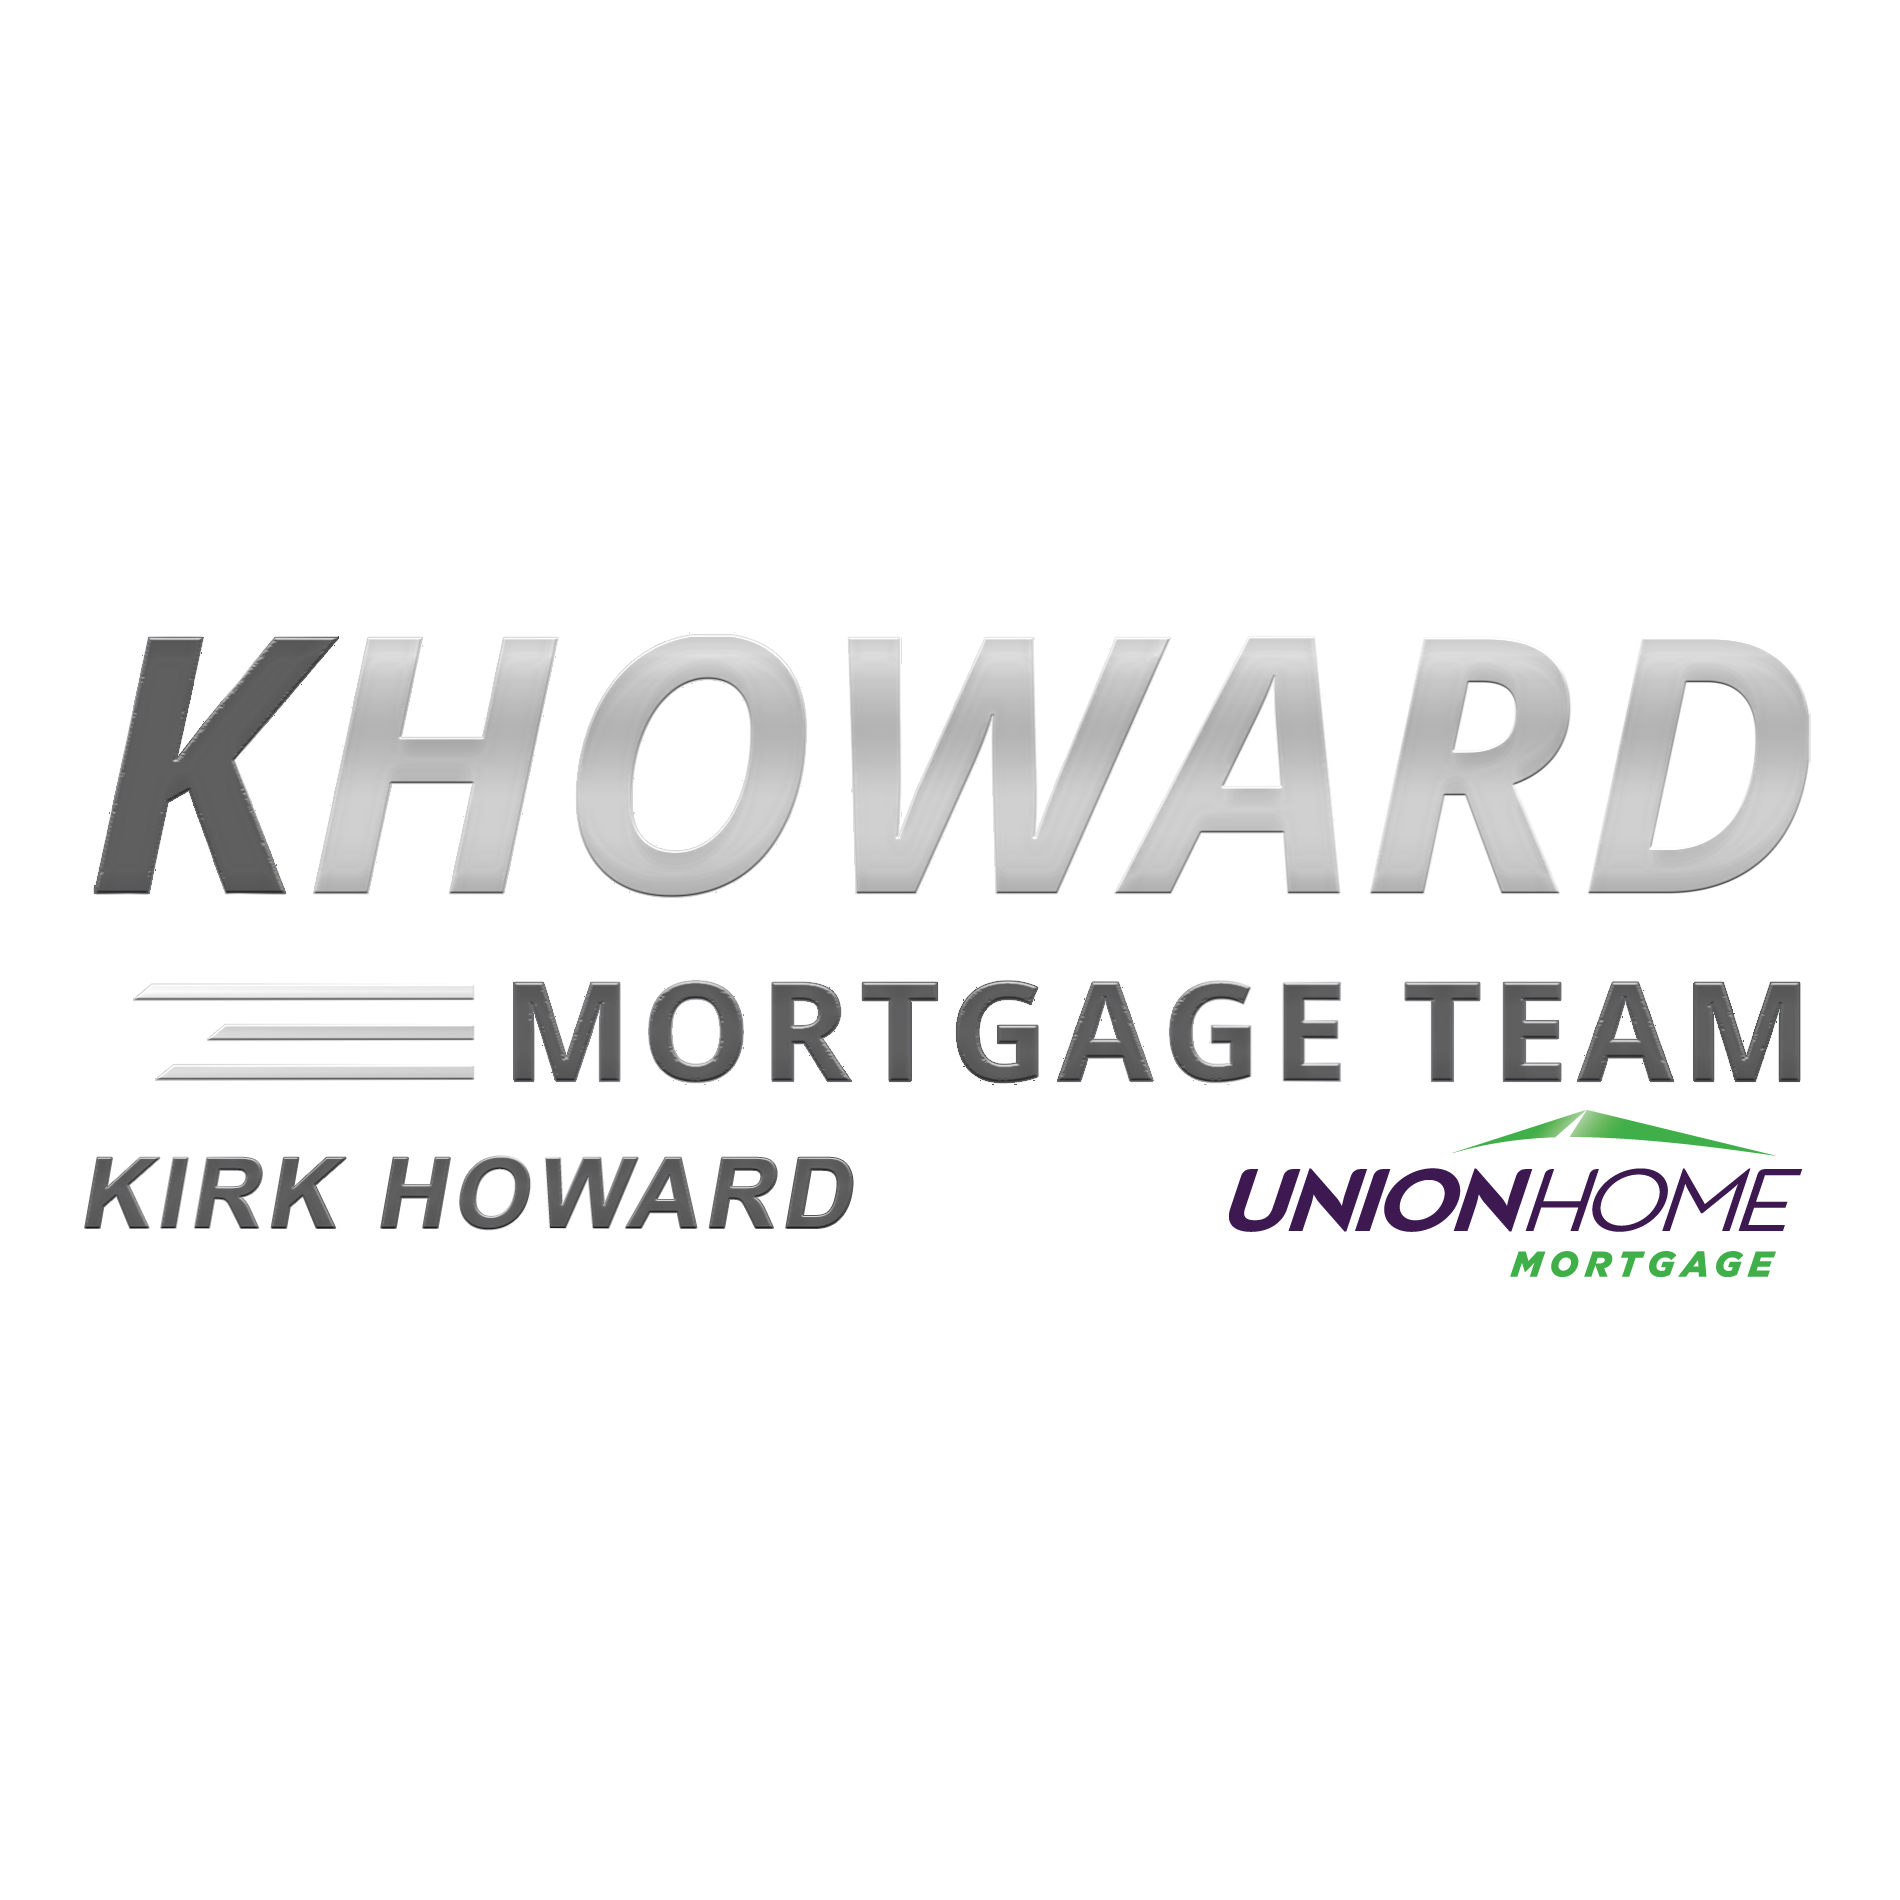 KHoward Mortgage Team